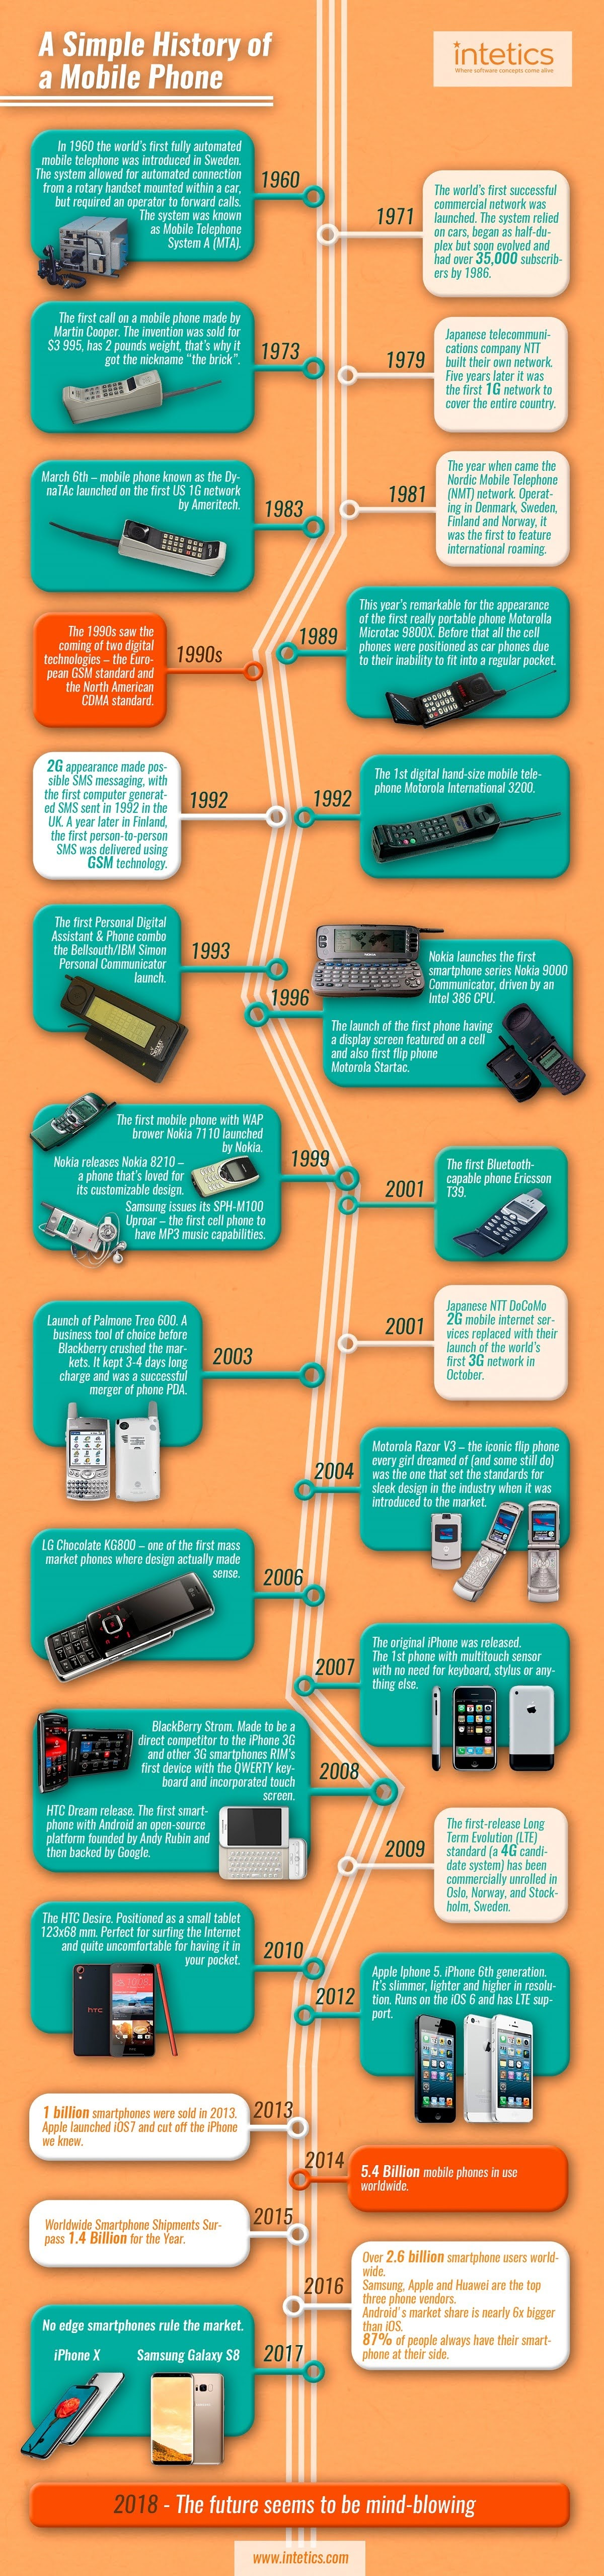 a-simple-history-of-a-mobile-phone-infographic